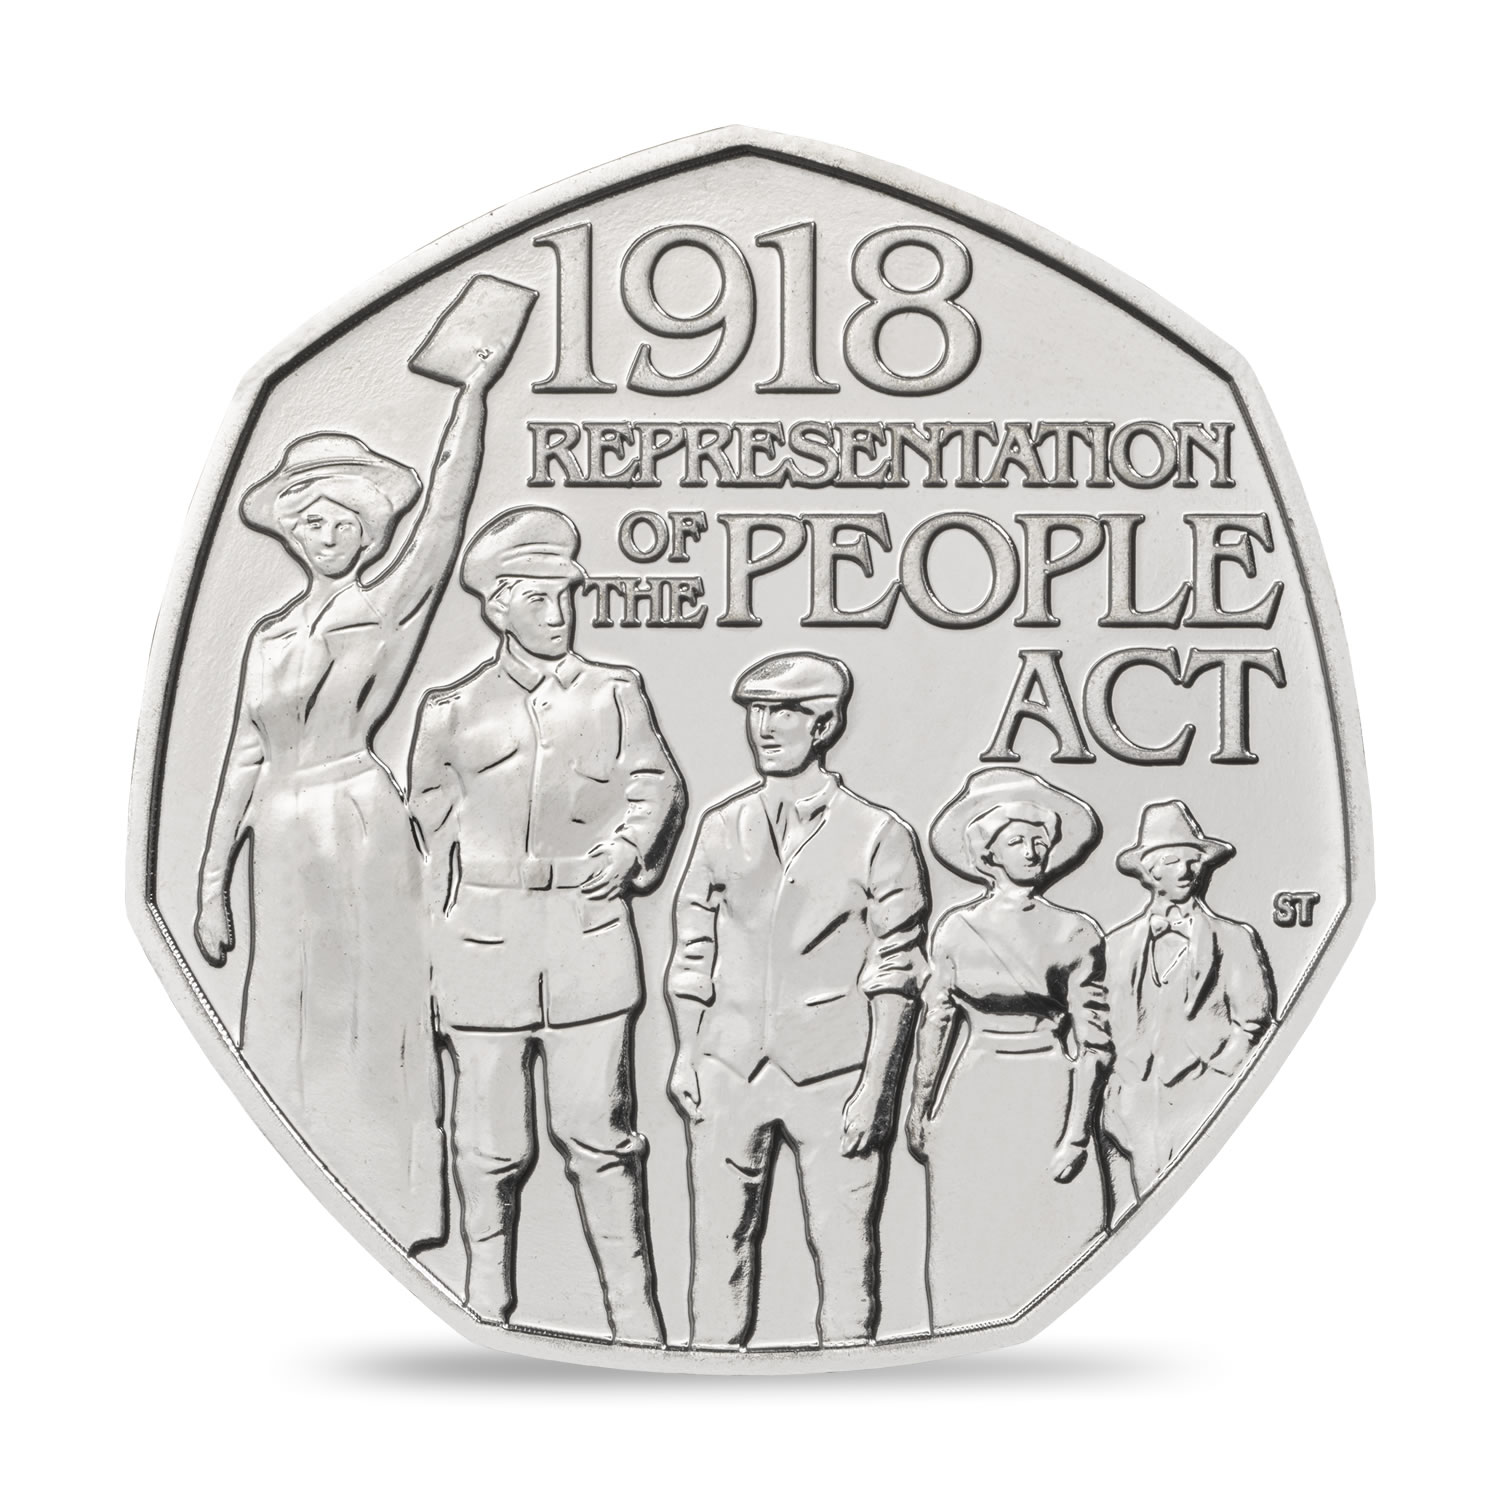 Representation of the People Act | The Royal Mint